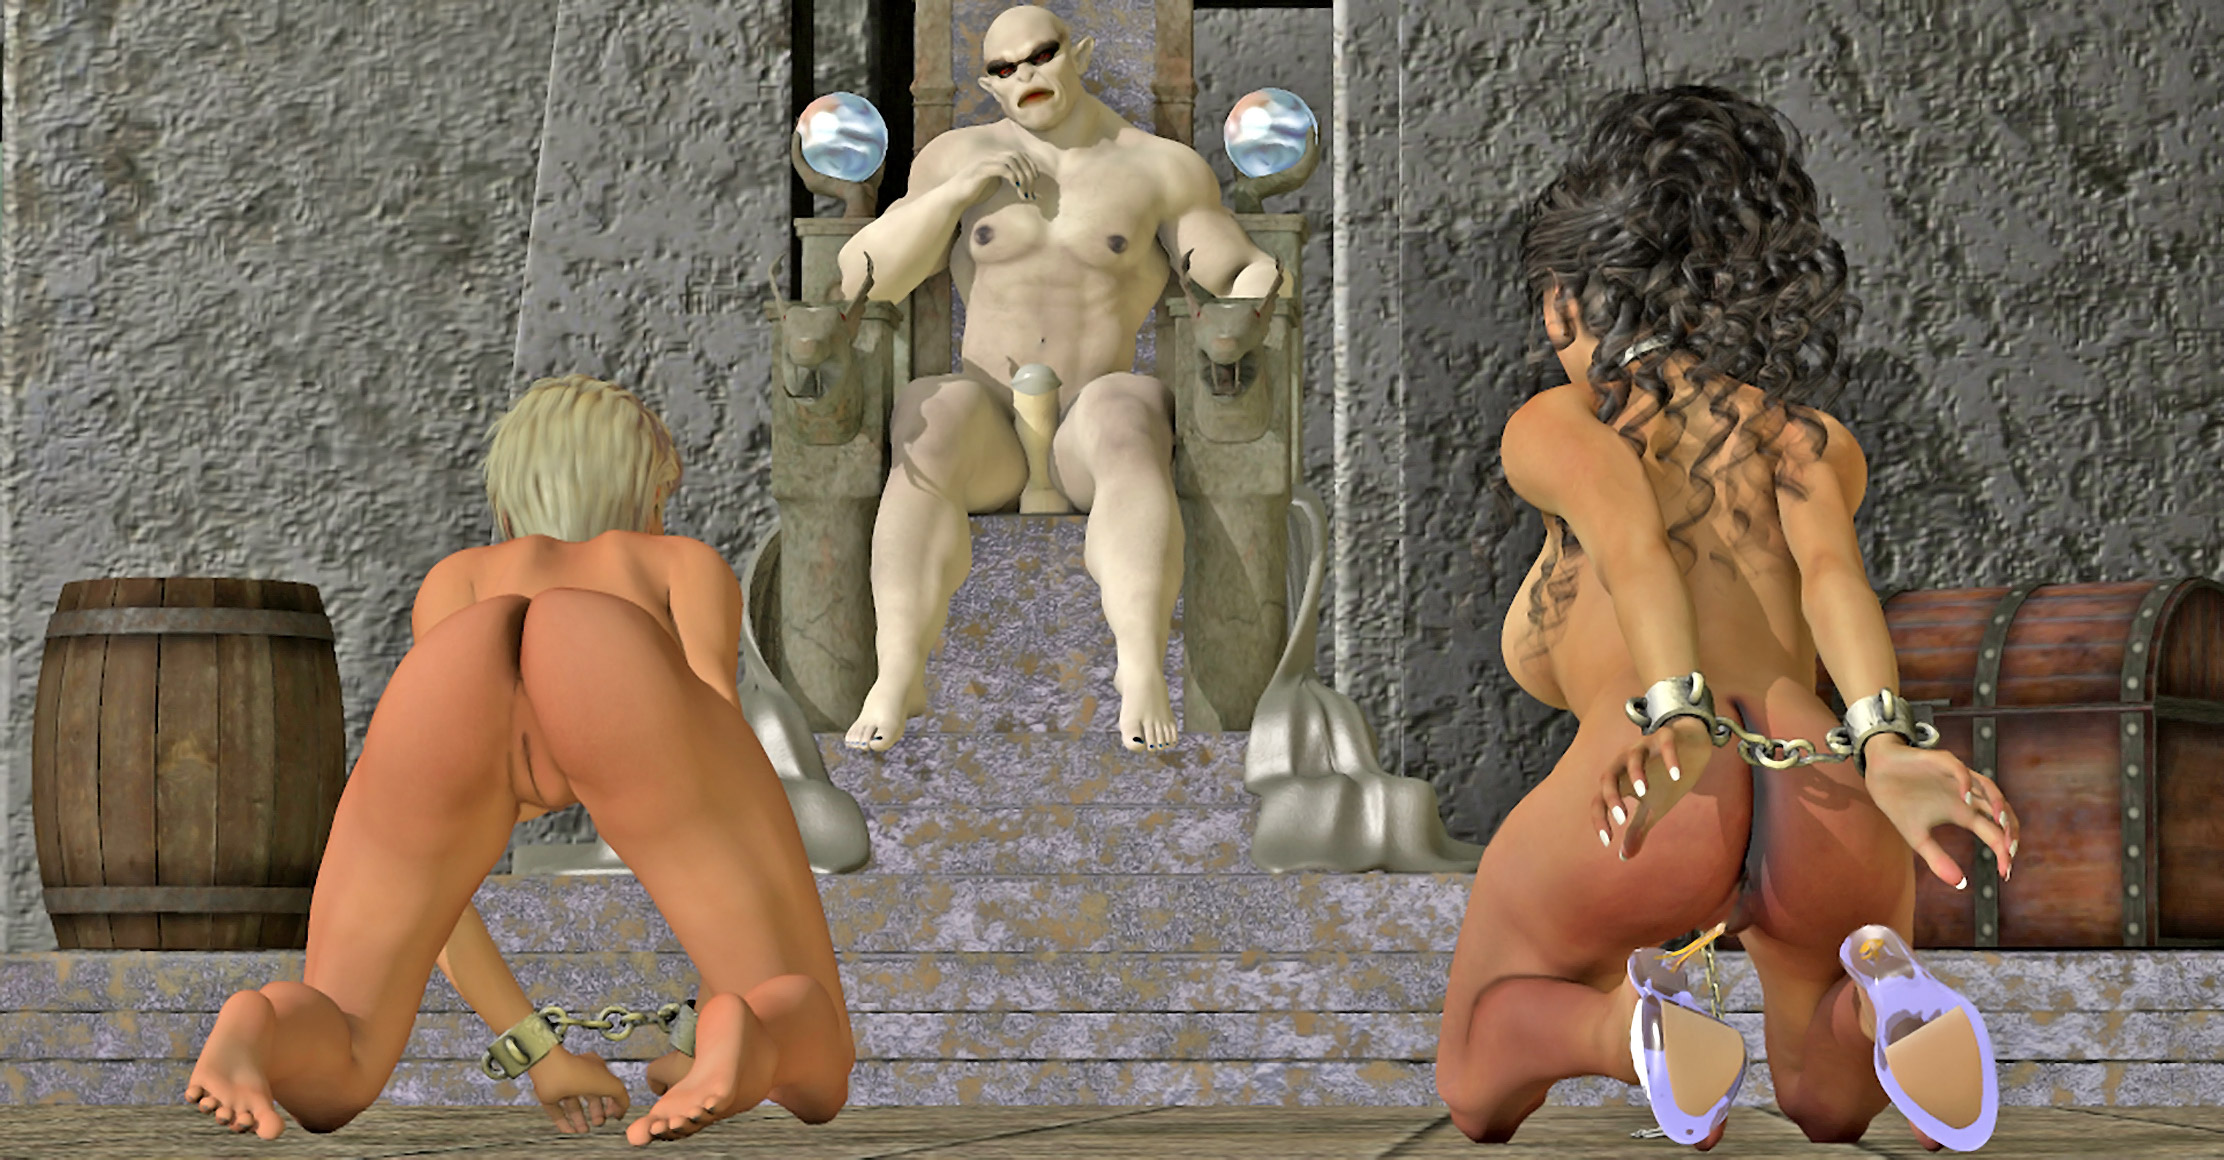 Download video 3d monster porn adult photos